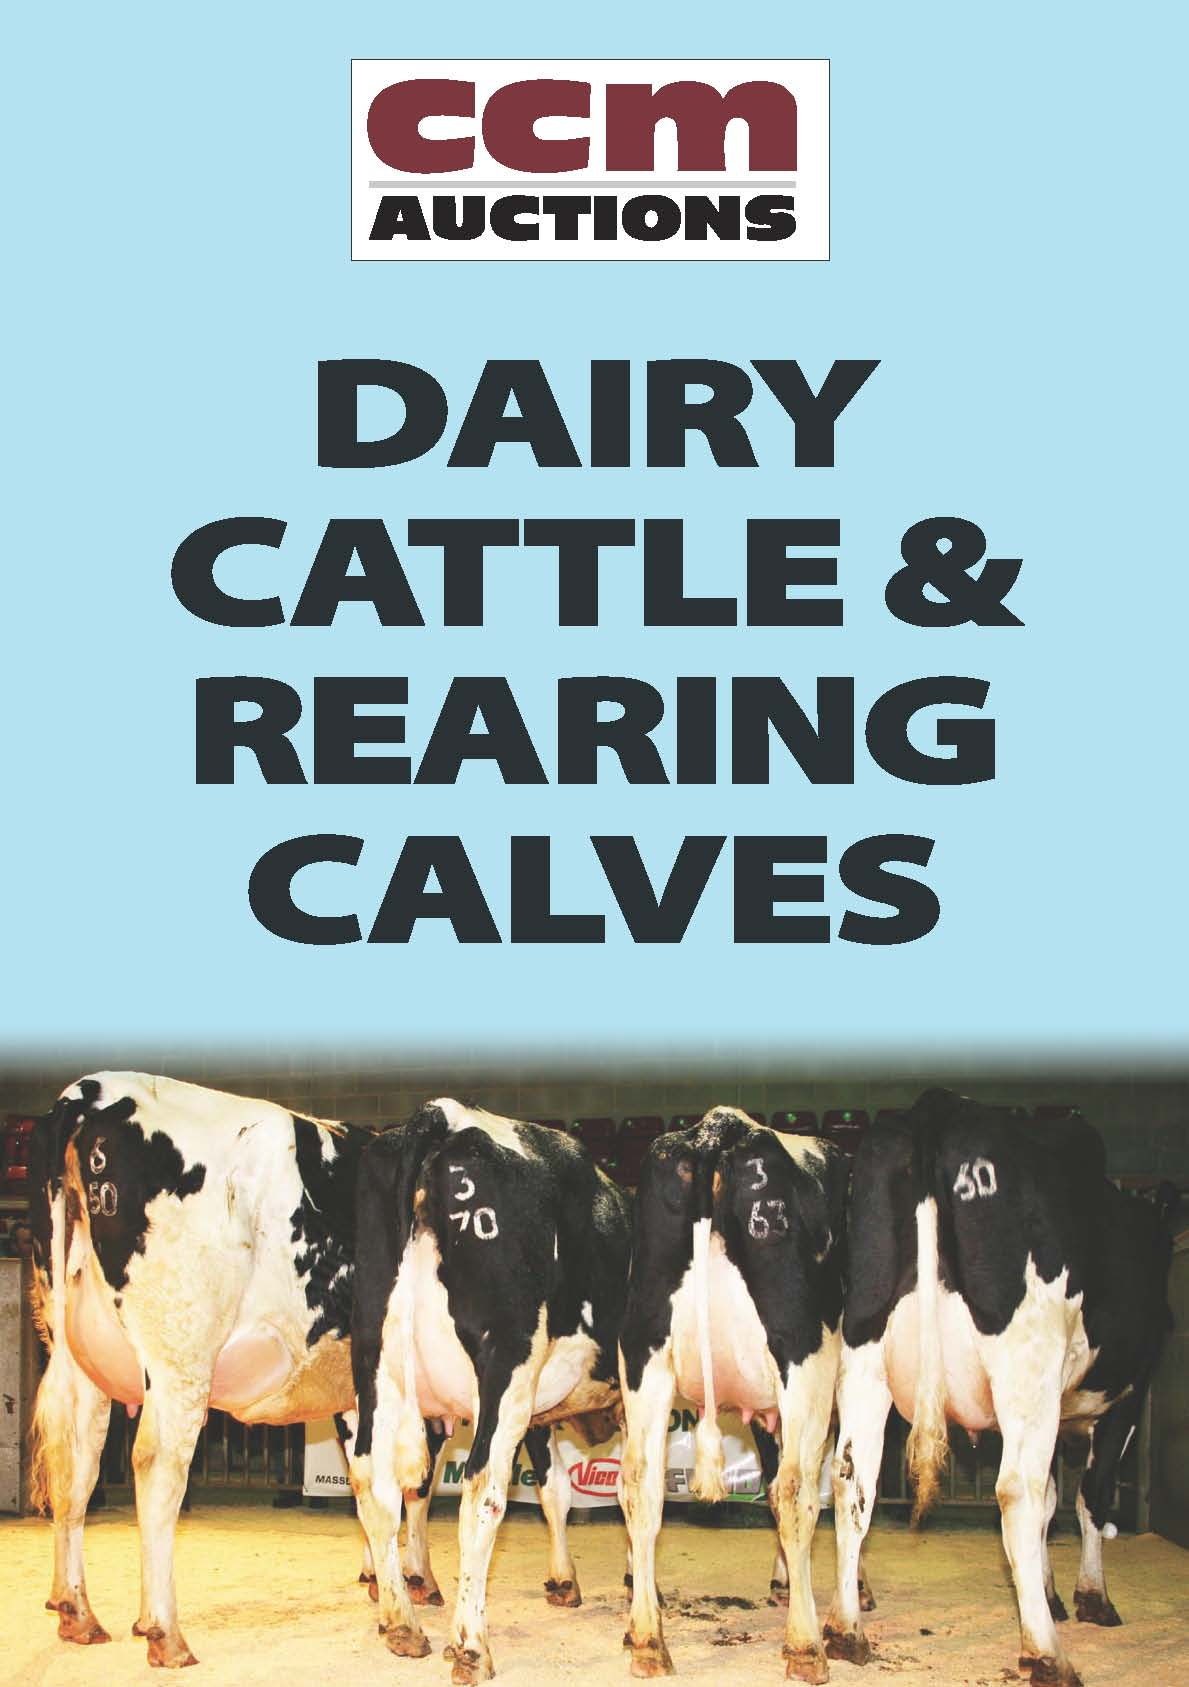 DAIRY & CALVES - MONDAY 24TH AUGUST 2015